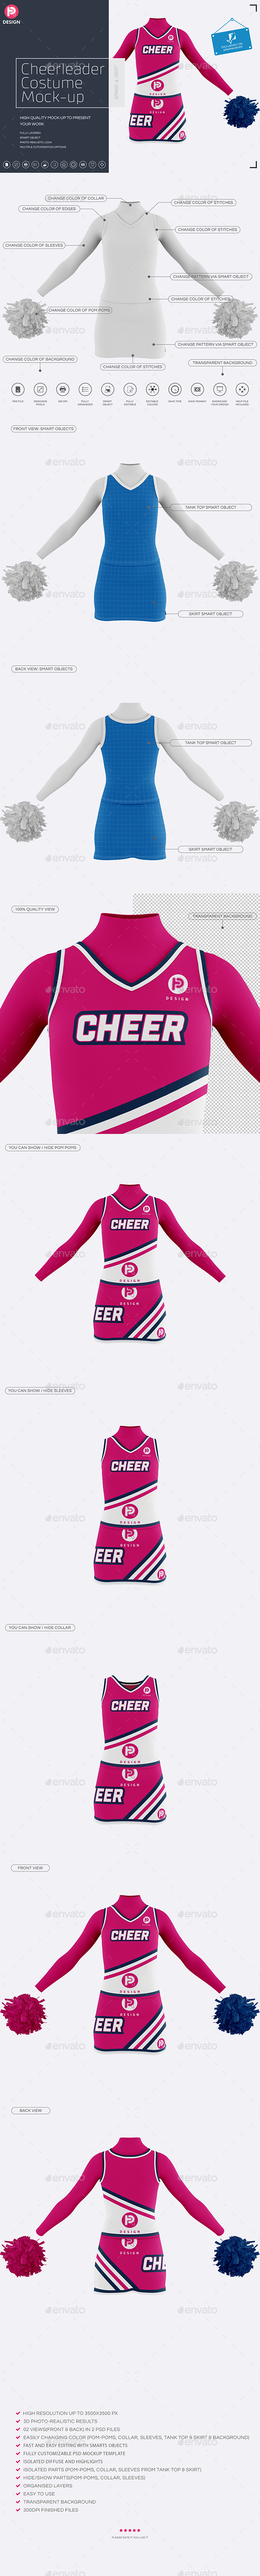 Cheerleader Costume Mock-Up (Front & Back views) - Miscellaneous Apparel